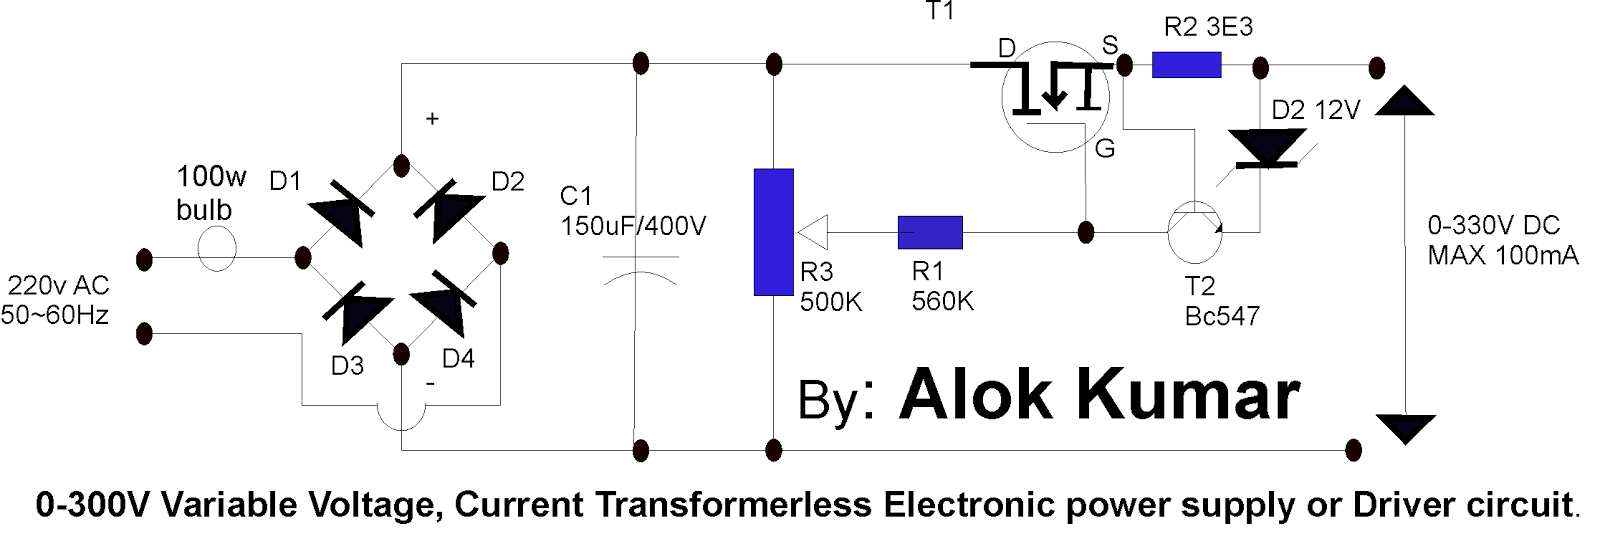 Terrific Electronic Circuits Transformerless Power Supply Led Drivers Wiring Cloud Overrenstrafr09Org